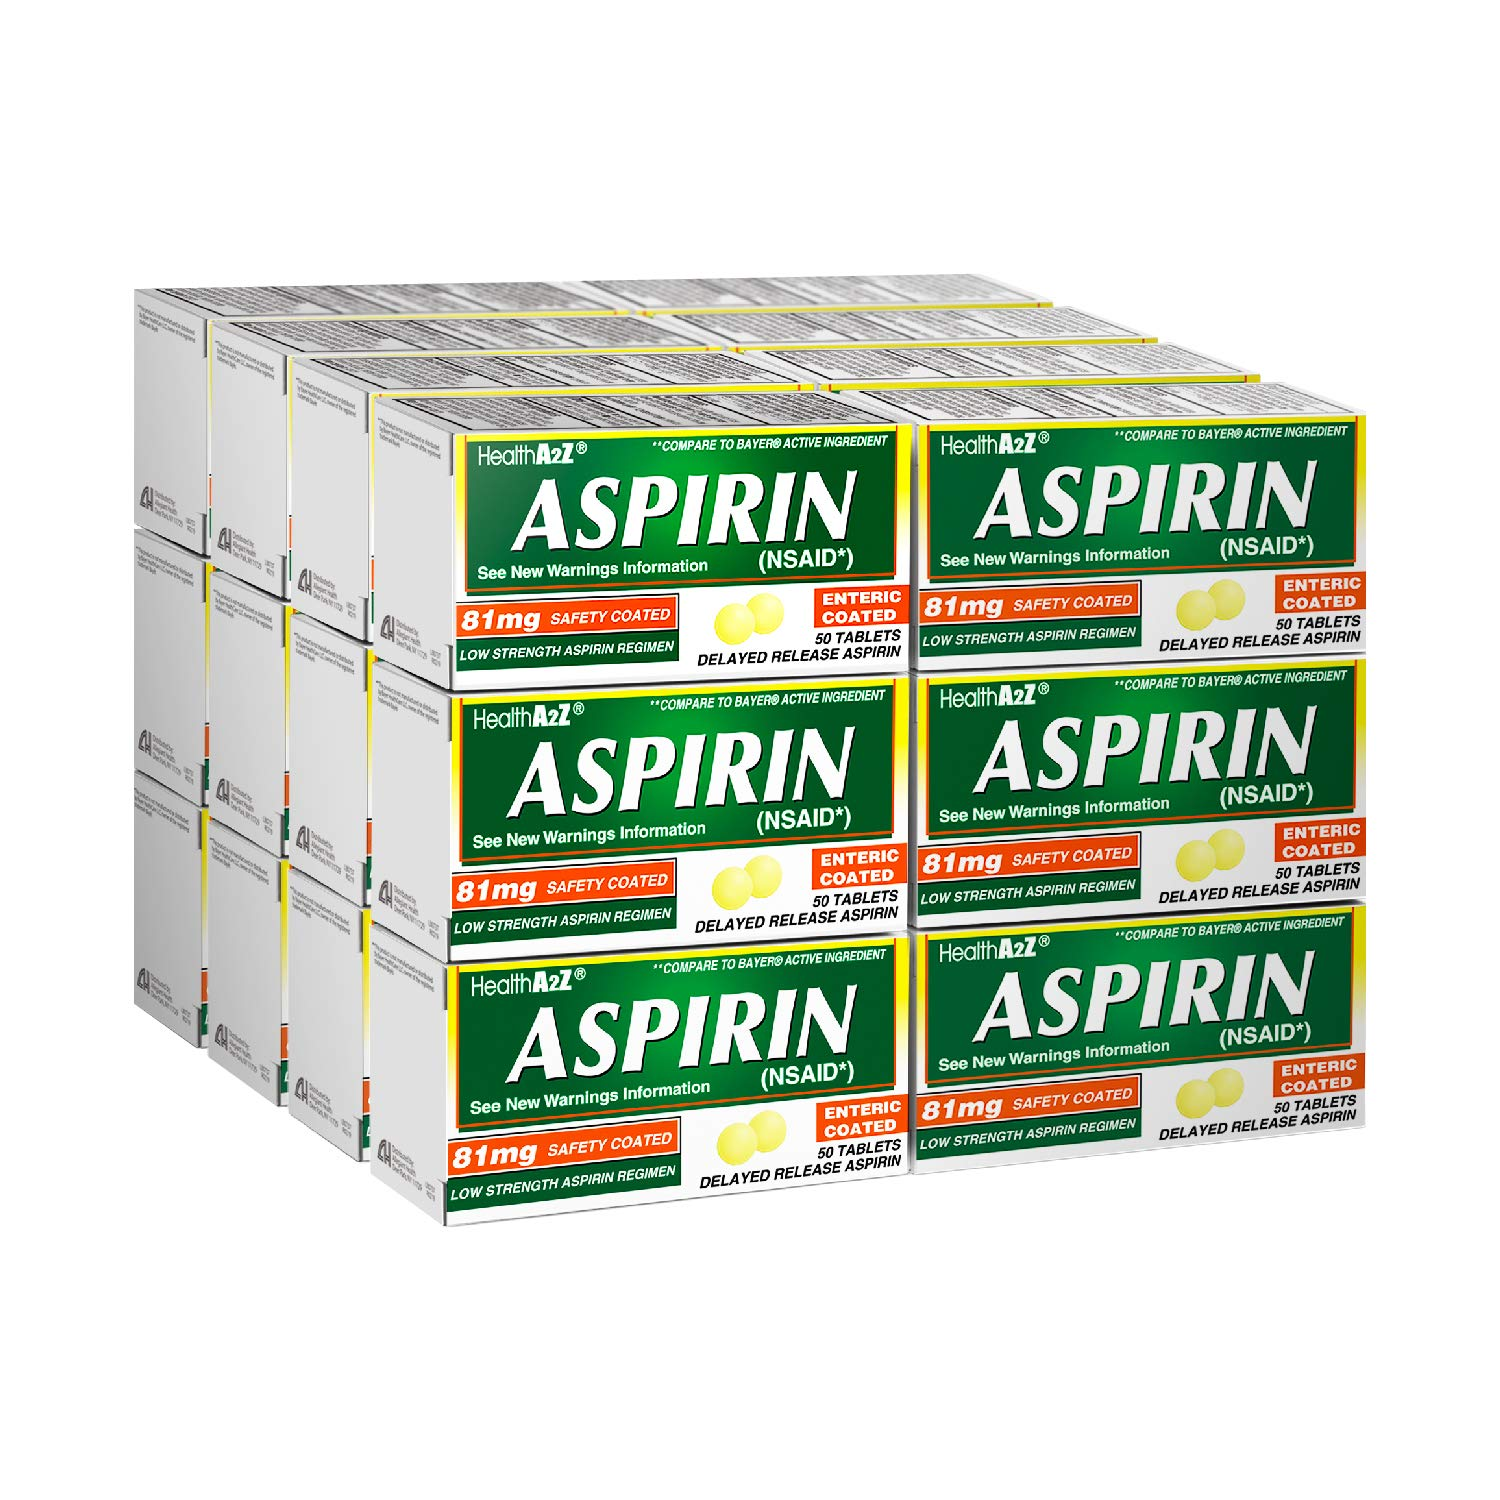 HealthA2Z Aspirin 81mg Low Strength, Enteric Coated, 24x50 Counts, Value Package by HealthA2Z